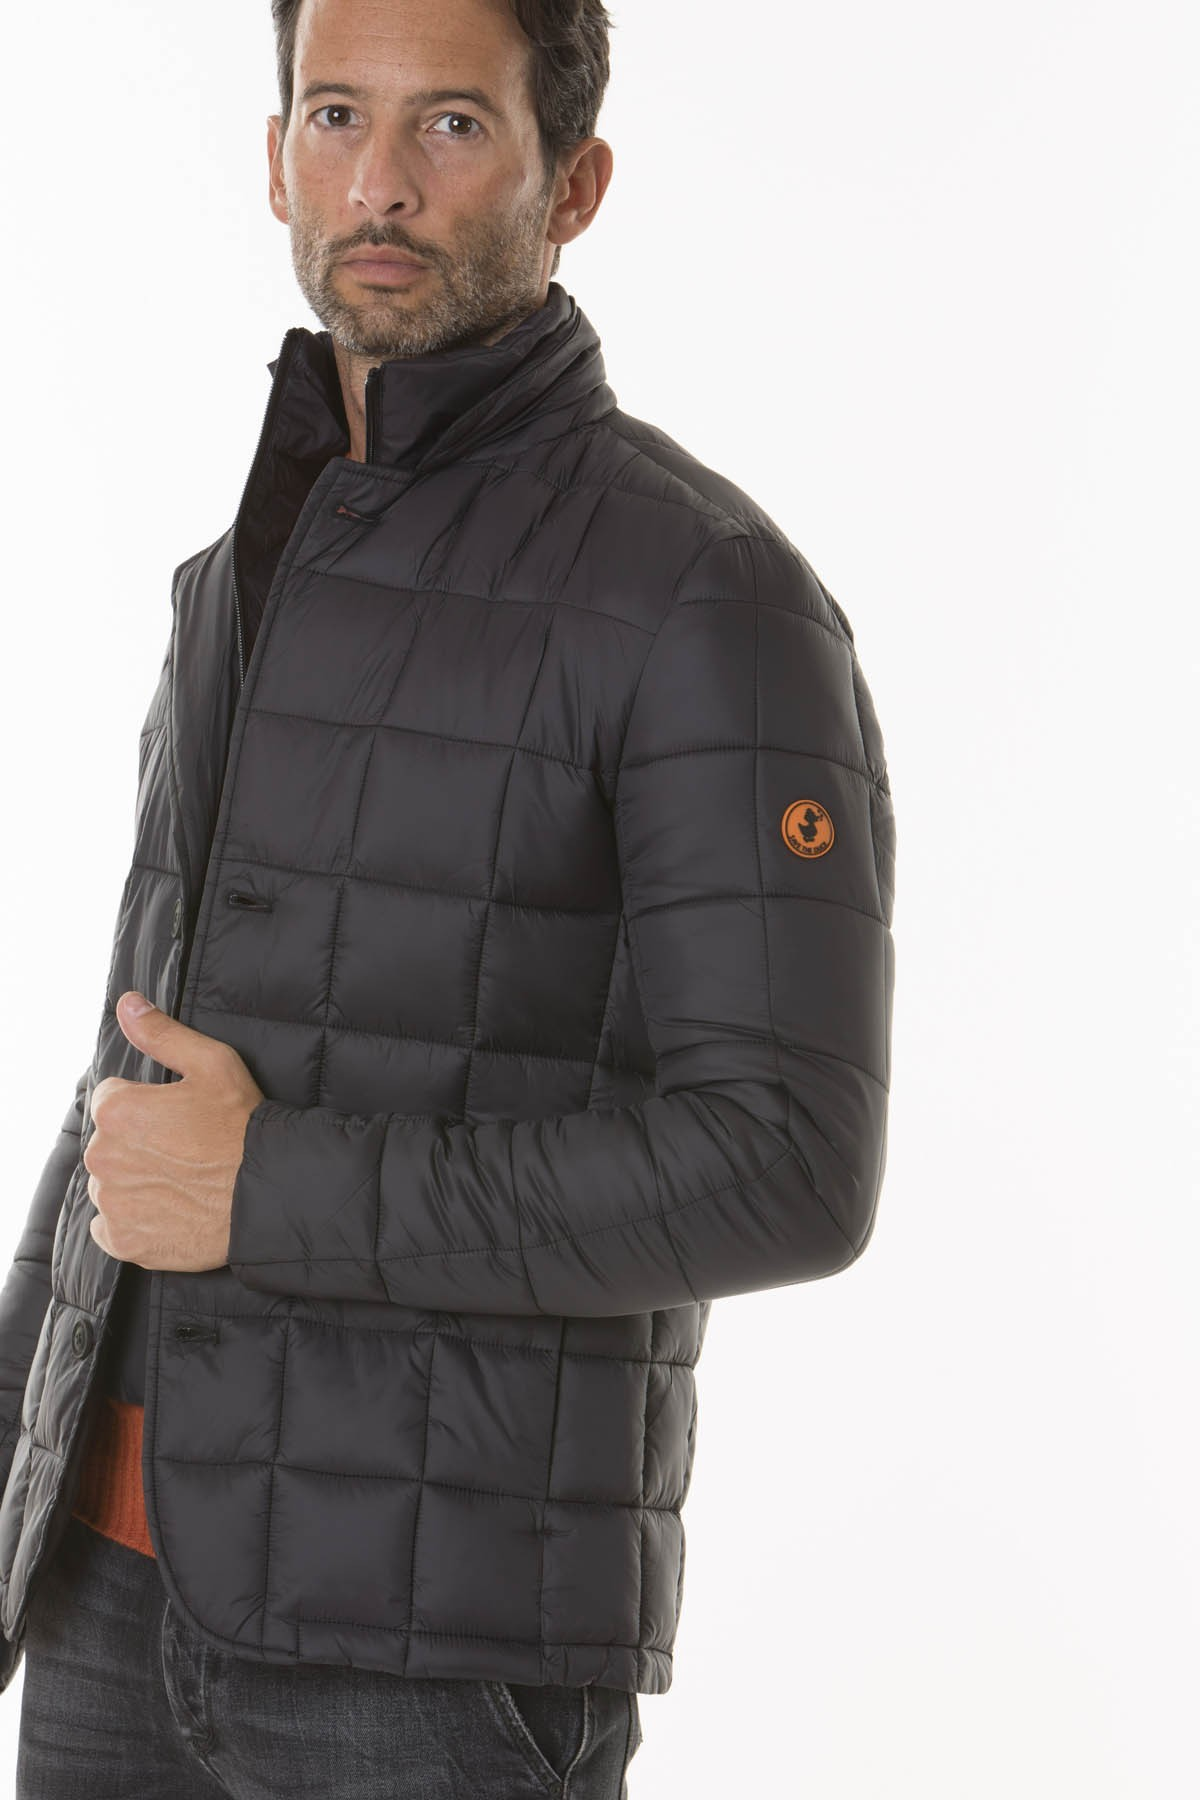 sale retailer d3582 7f67e Jacket for man D3714M GIGA7 SAVE THE DUCK F/W 18-19